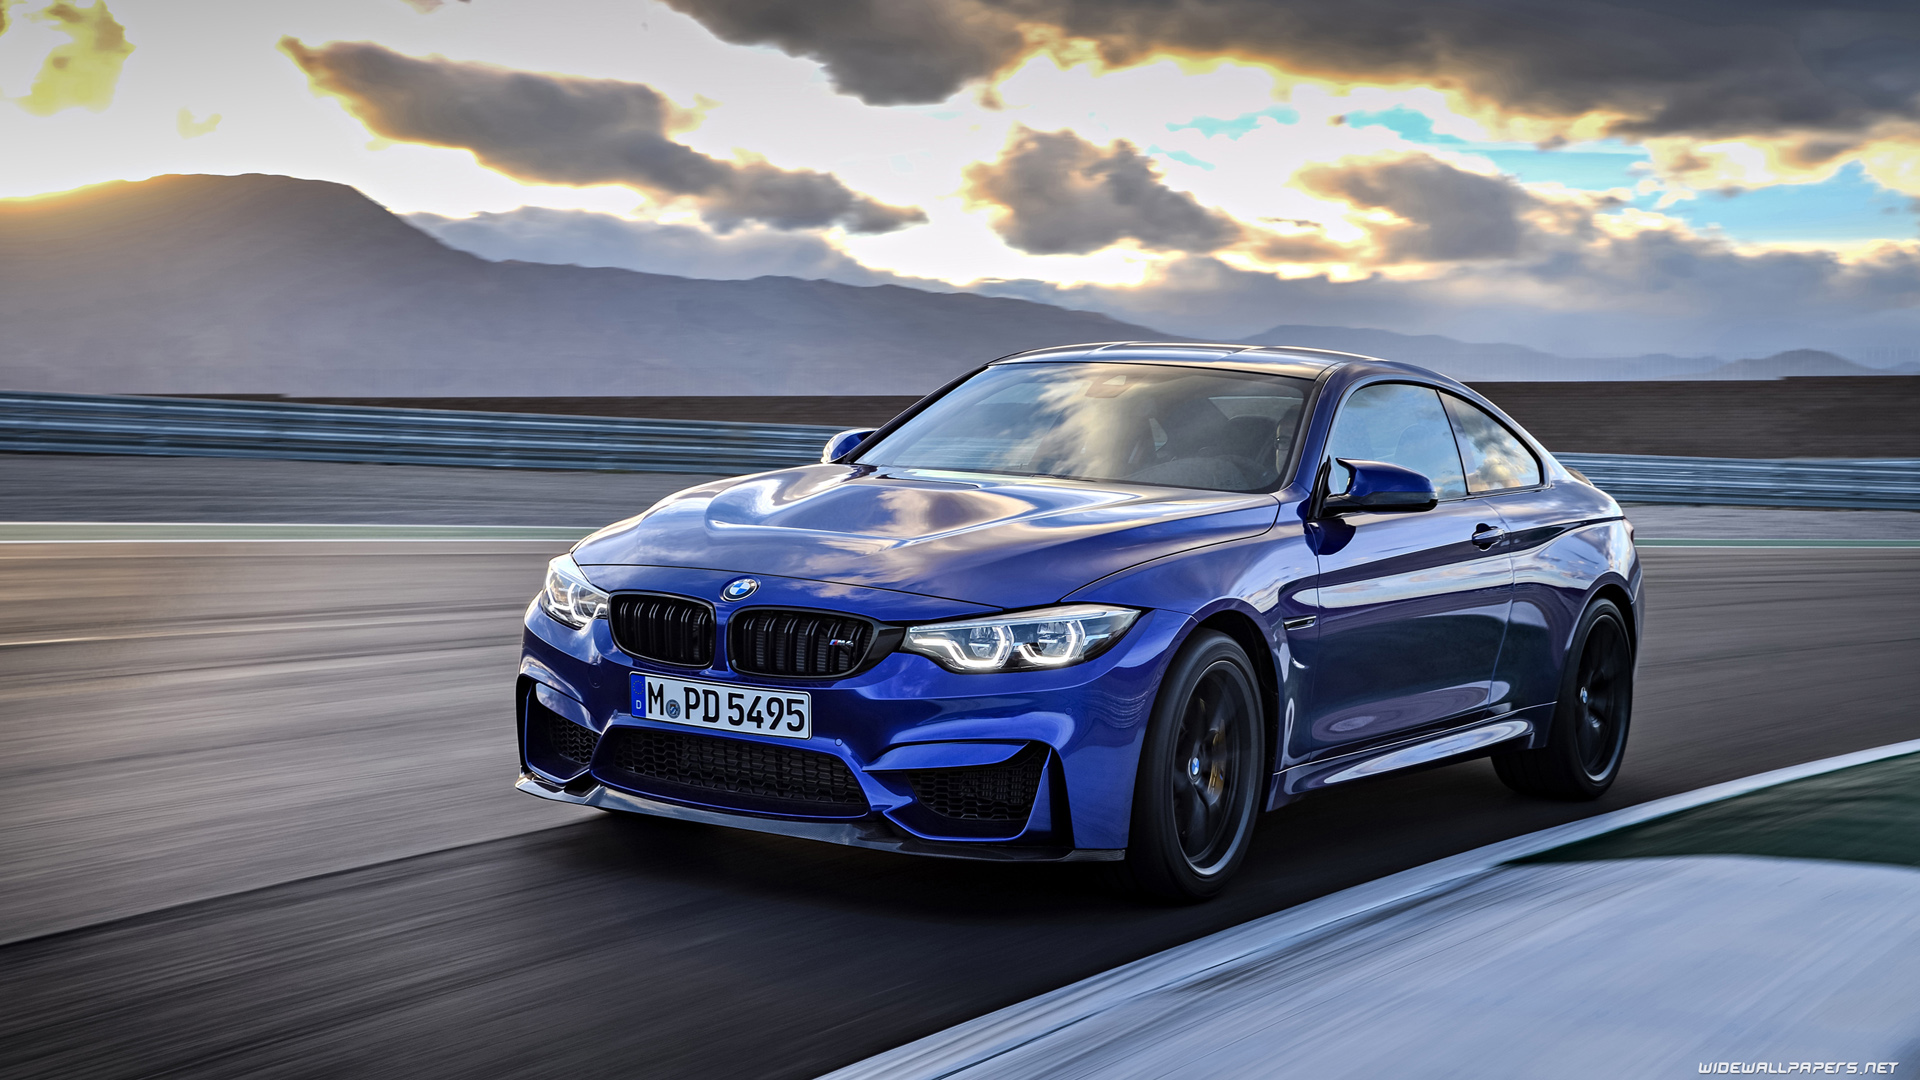 Bmw M4 Cars Desktop Wallpapers Hd And Wide Wallpapers